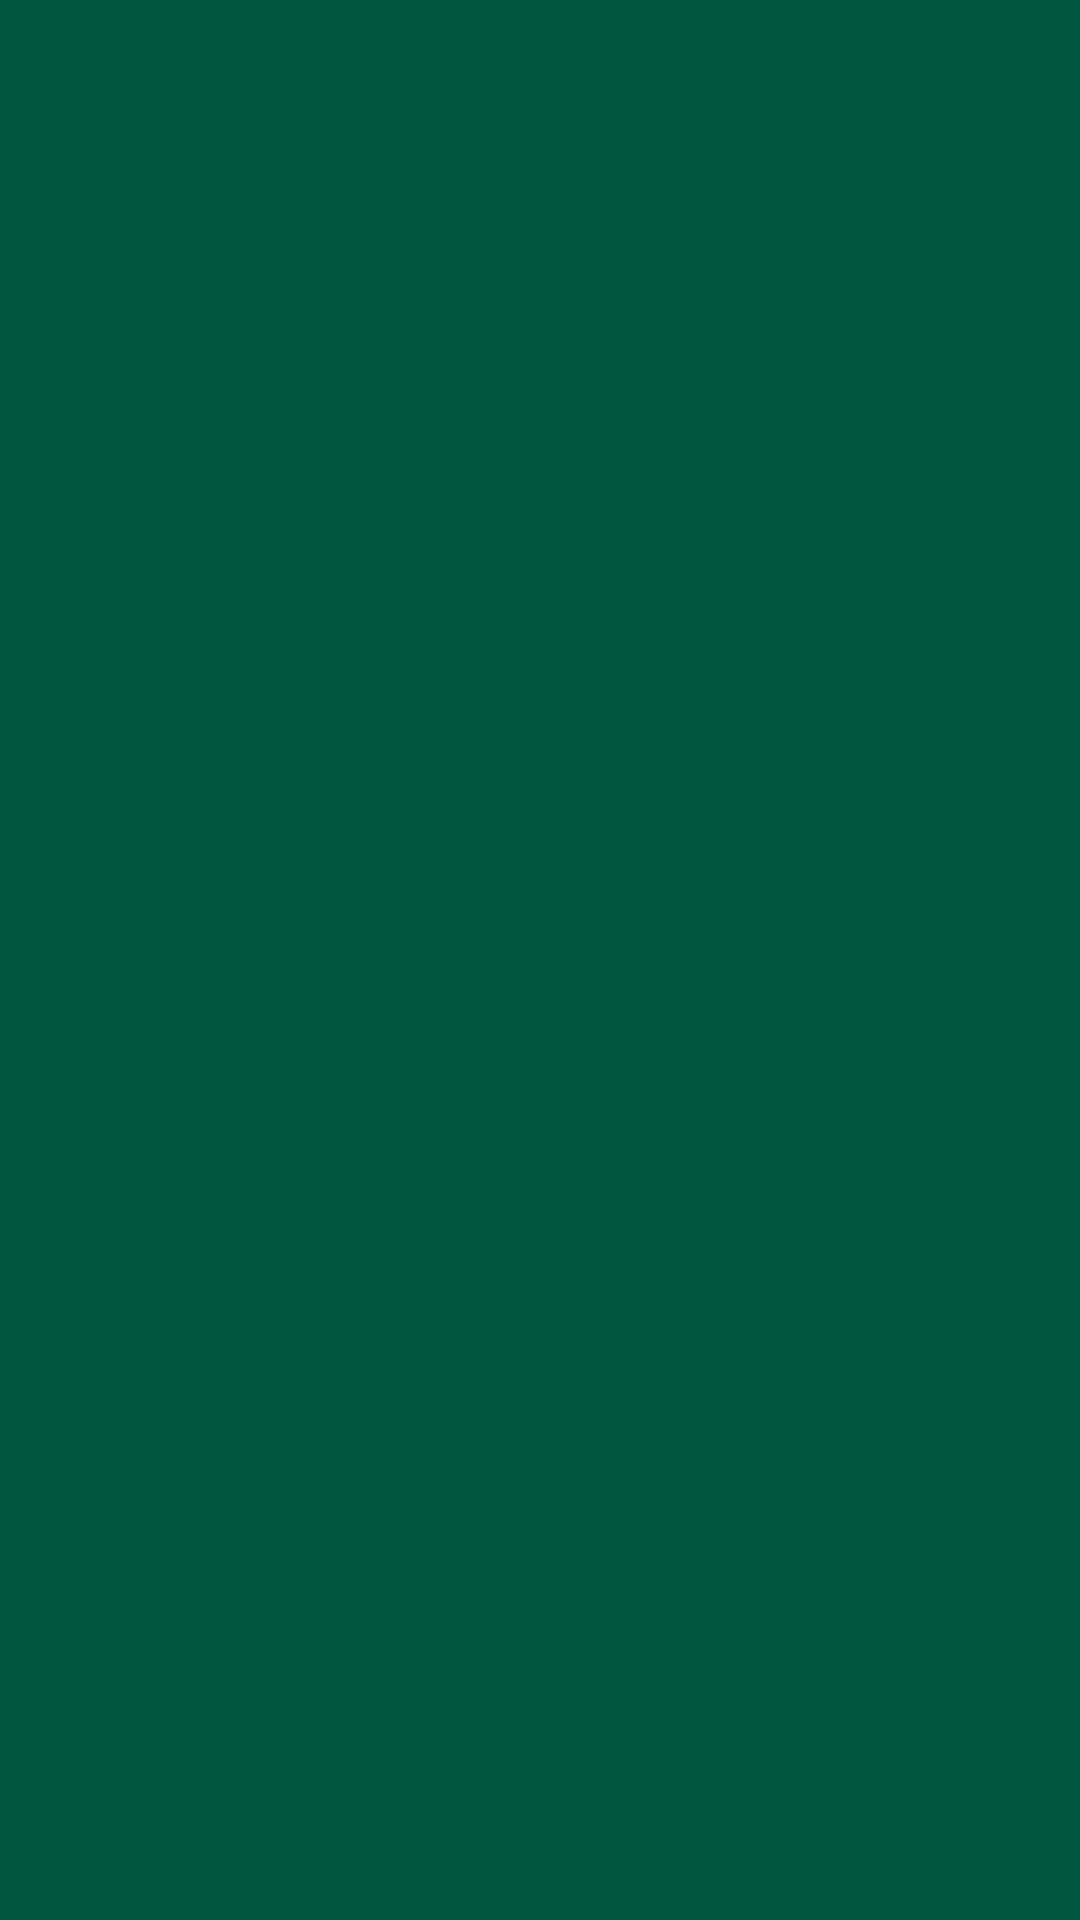 1080x1920 Sacramento State Green Solid Color Background